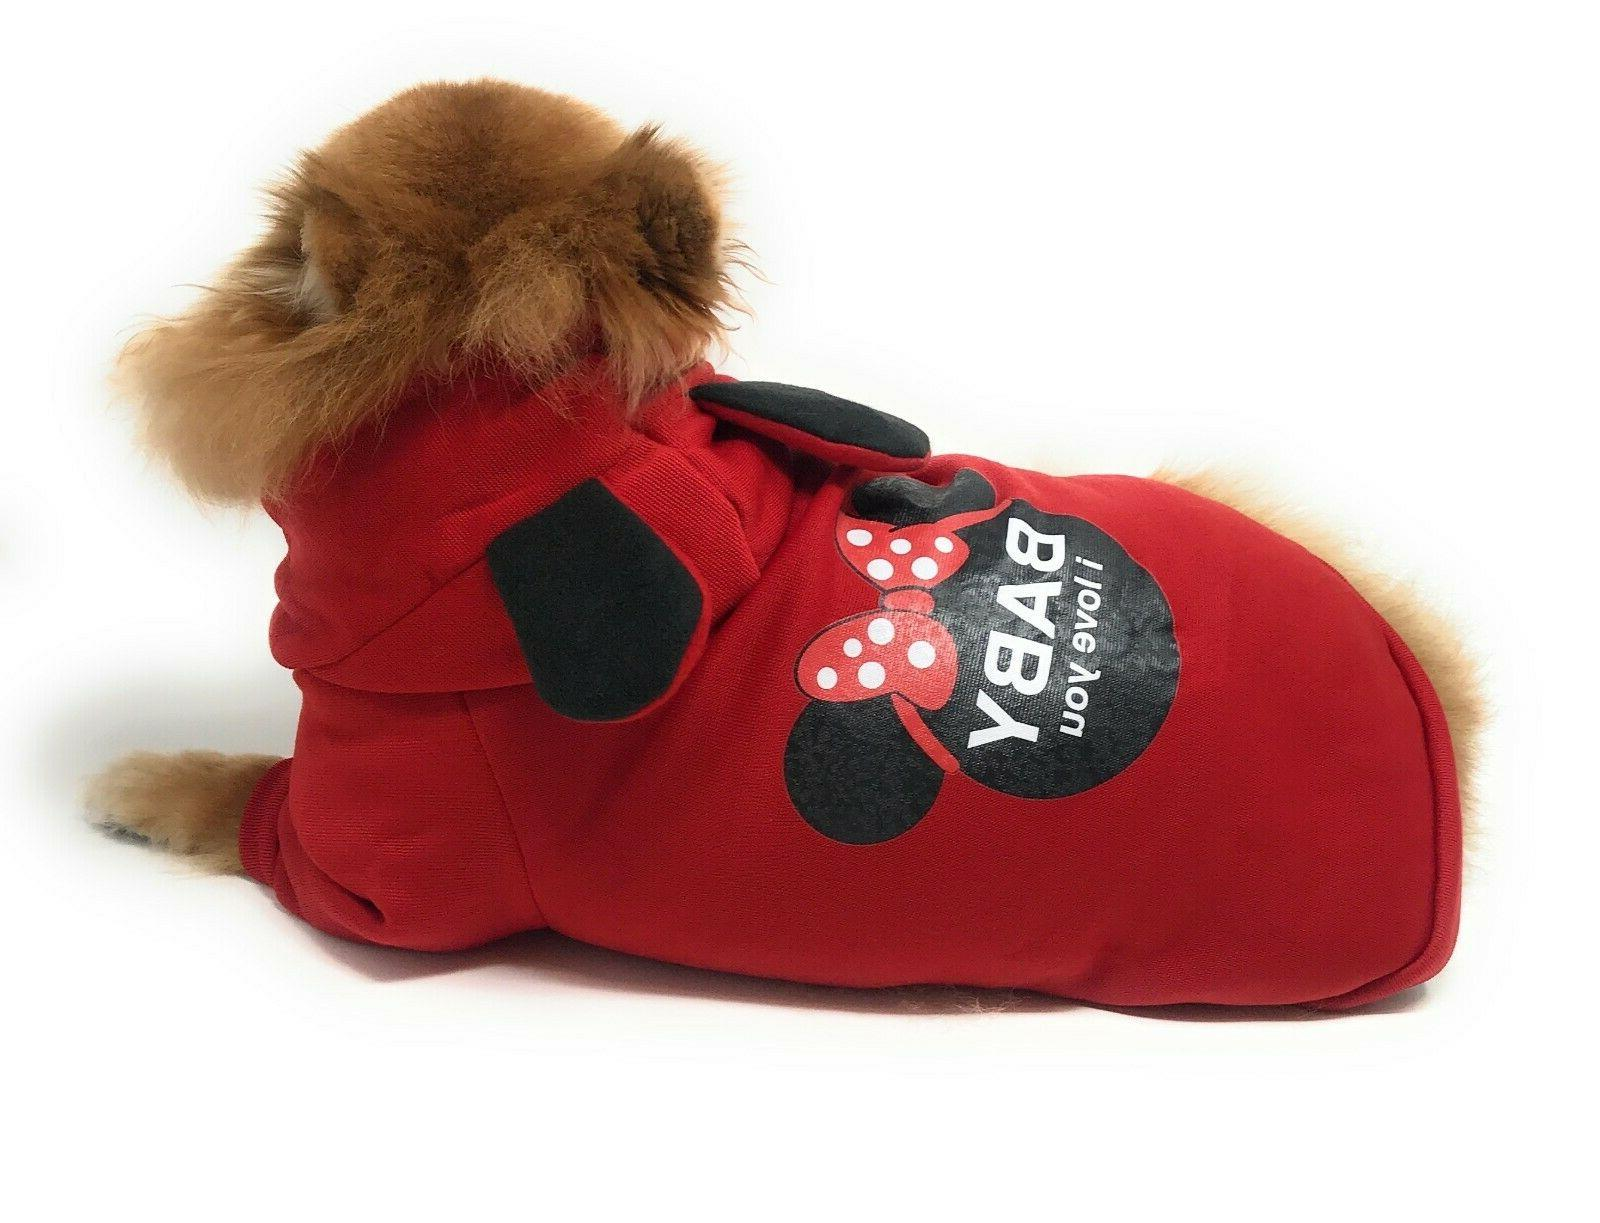 Hoodie Clothes Coat Small Dogs